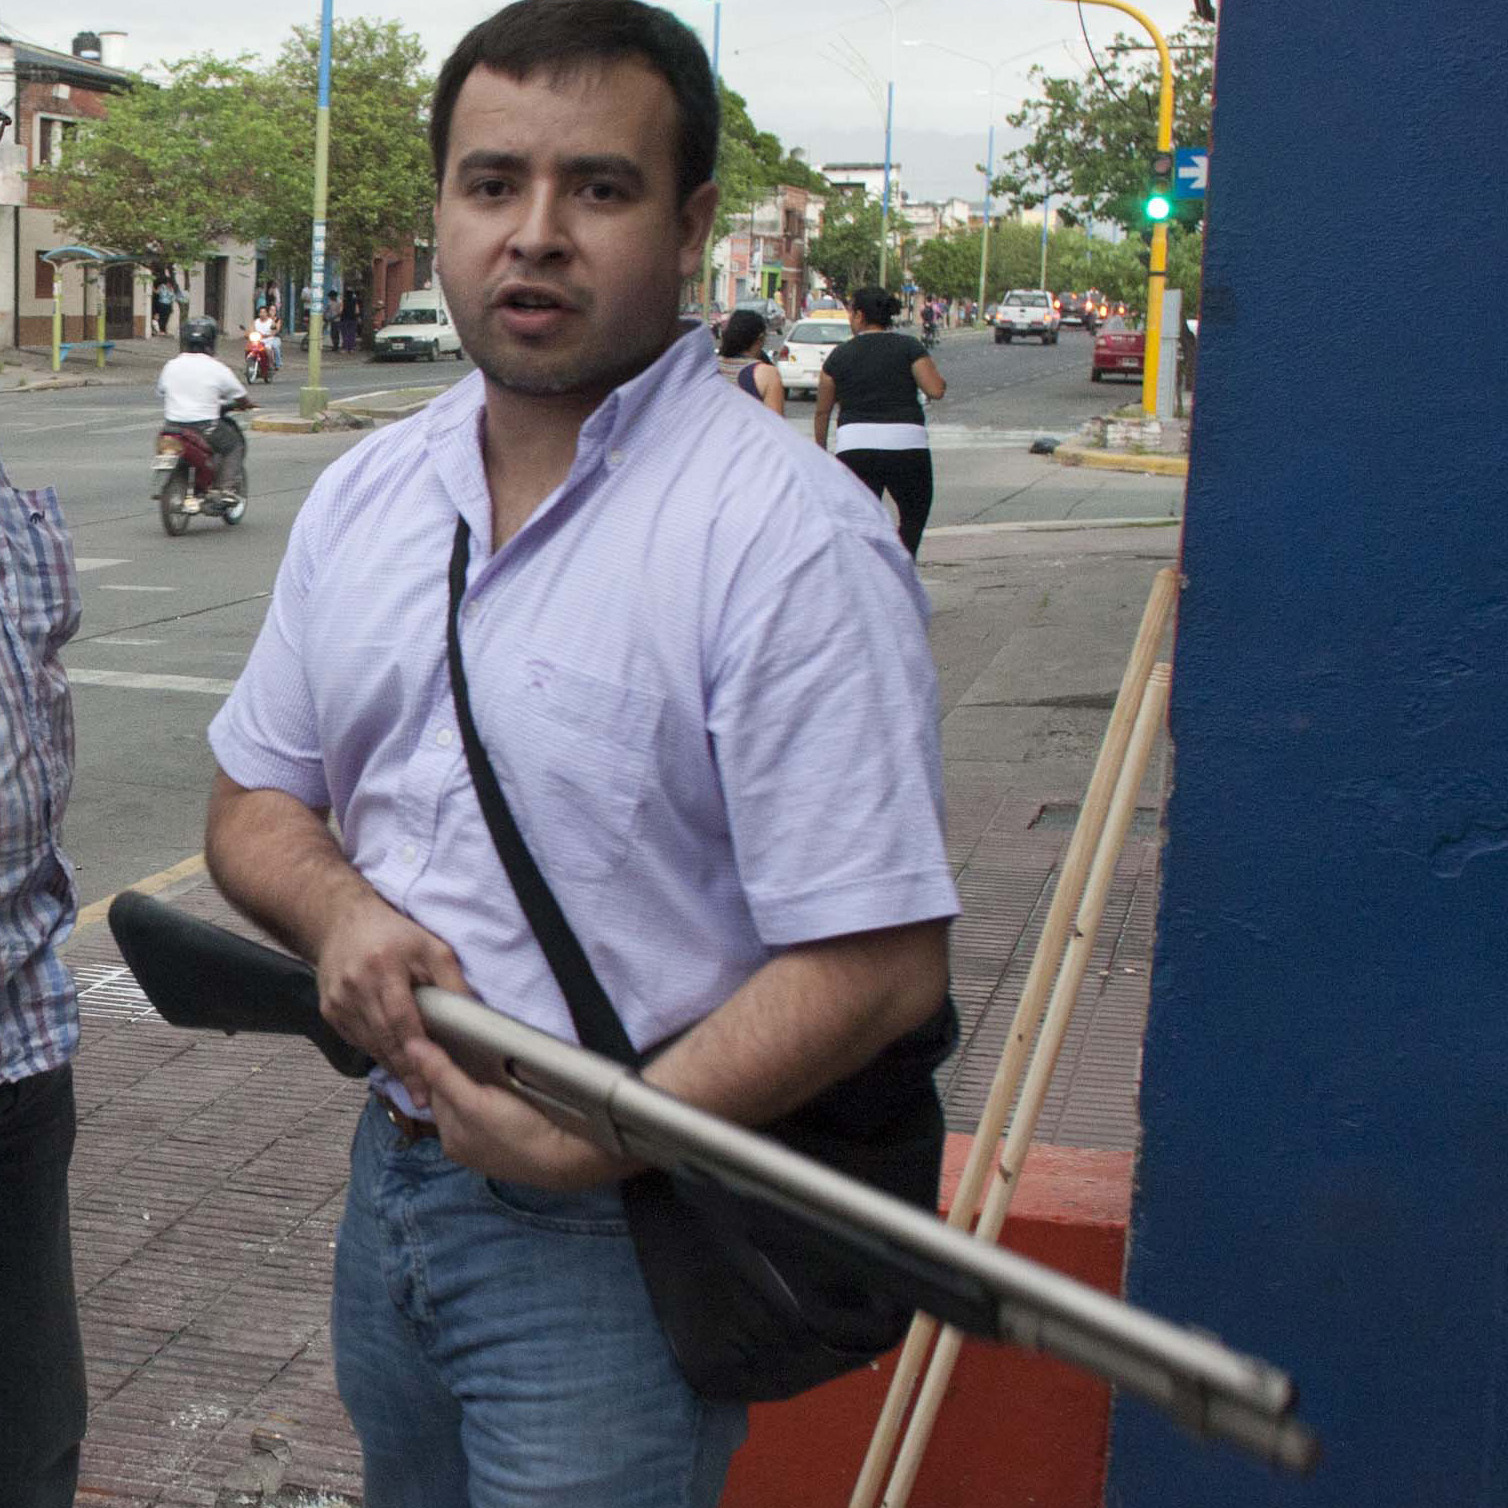 An armed shopkeeper stands outside his shop after it was looted in San Miguel de Tucuman, Argentina, on Monday. The country's government dispatched federal police to trouble spots as looting spread early this week.